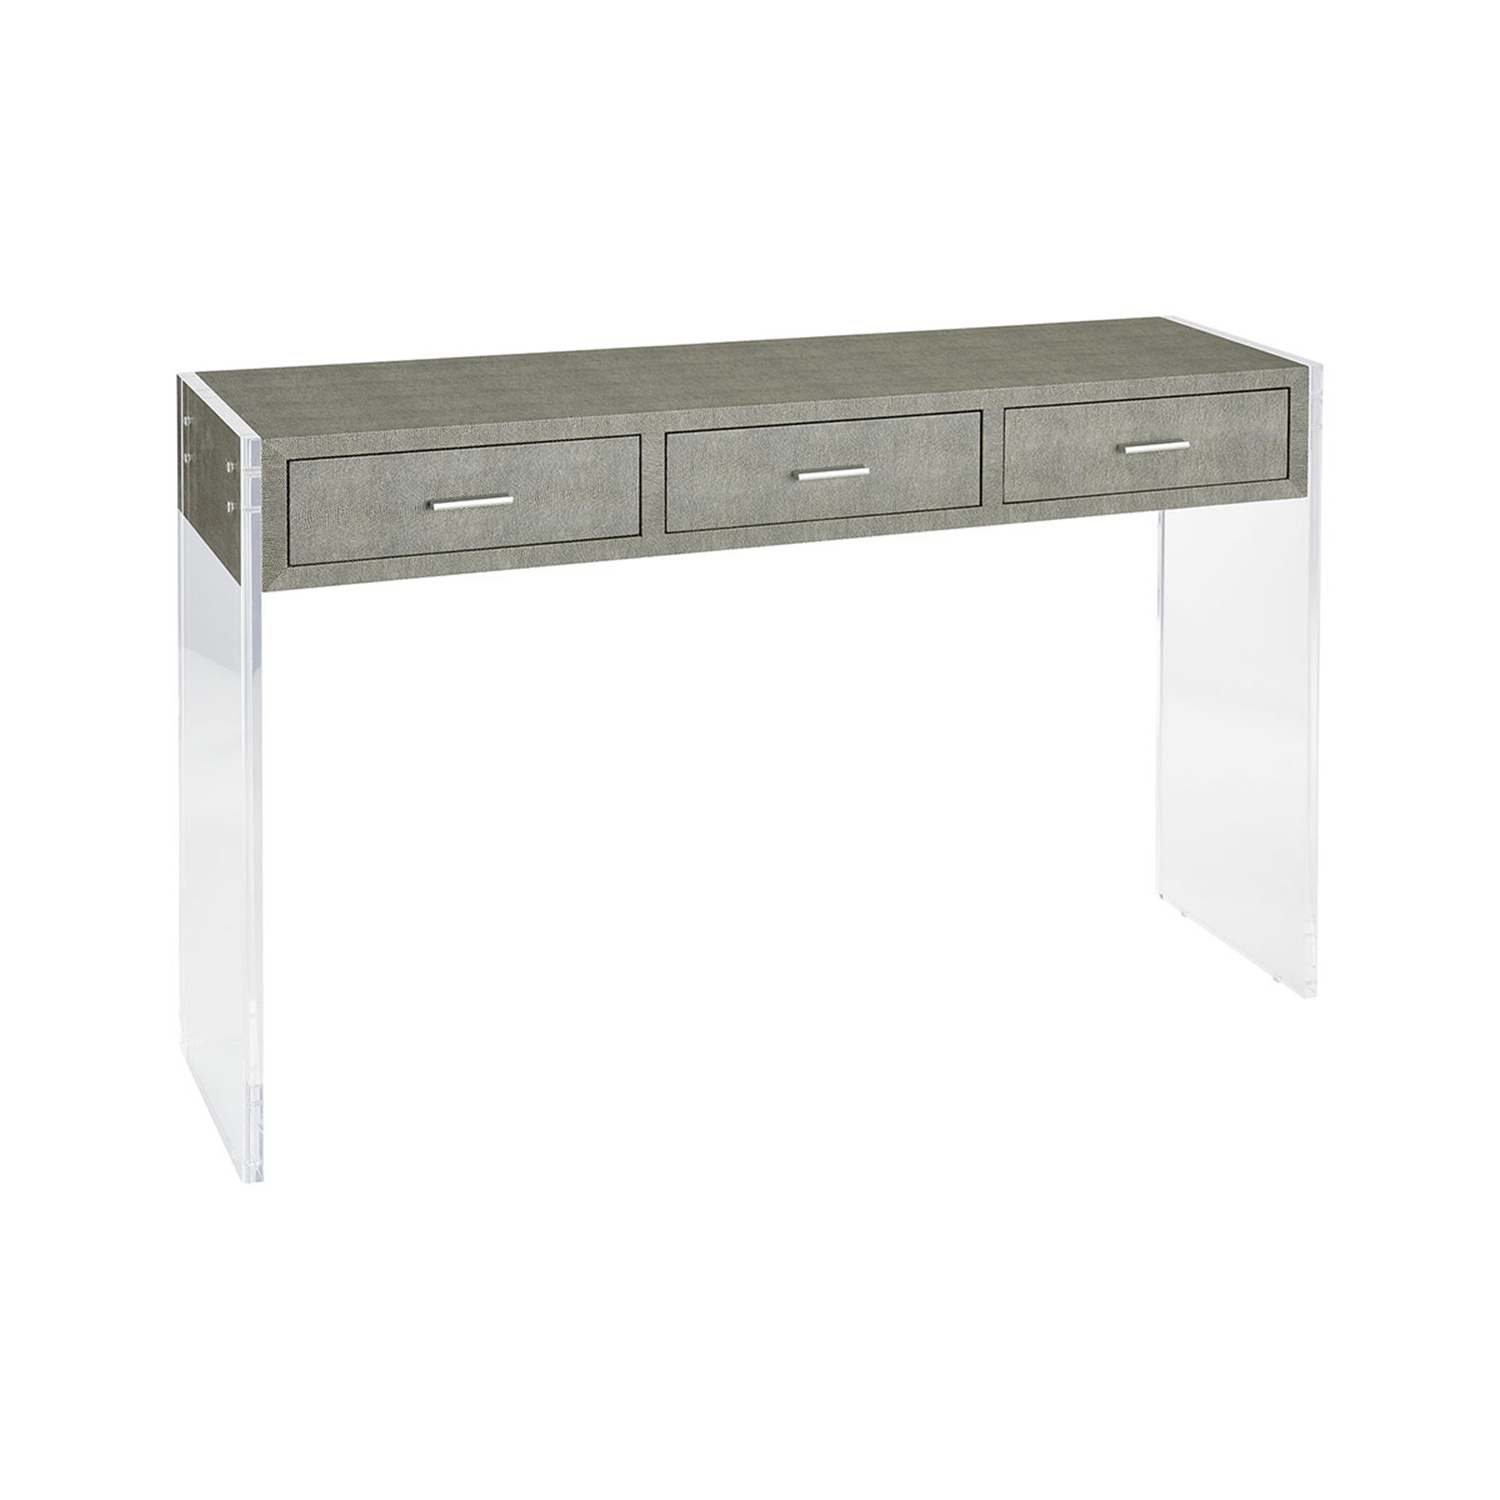 Sterling Industries Monaco Grey Faux Shagreen And Clear Acrylic 48 Throughout Grey Shagreen Media Console Tables (View 20 of 20)